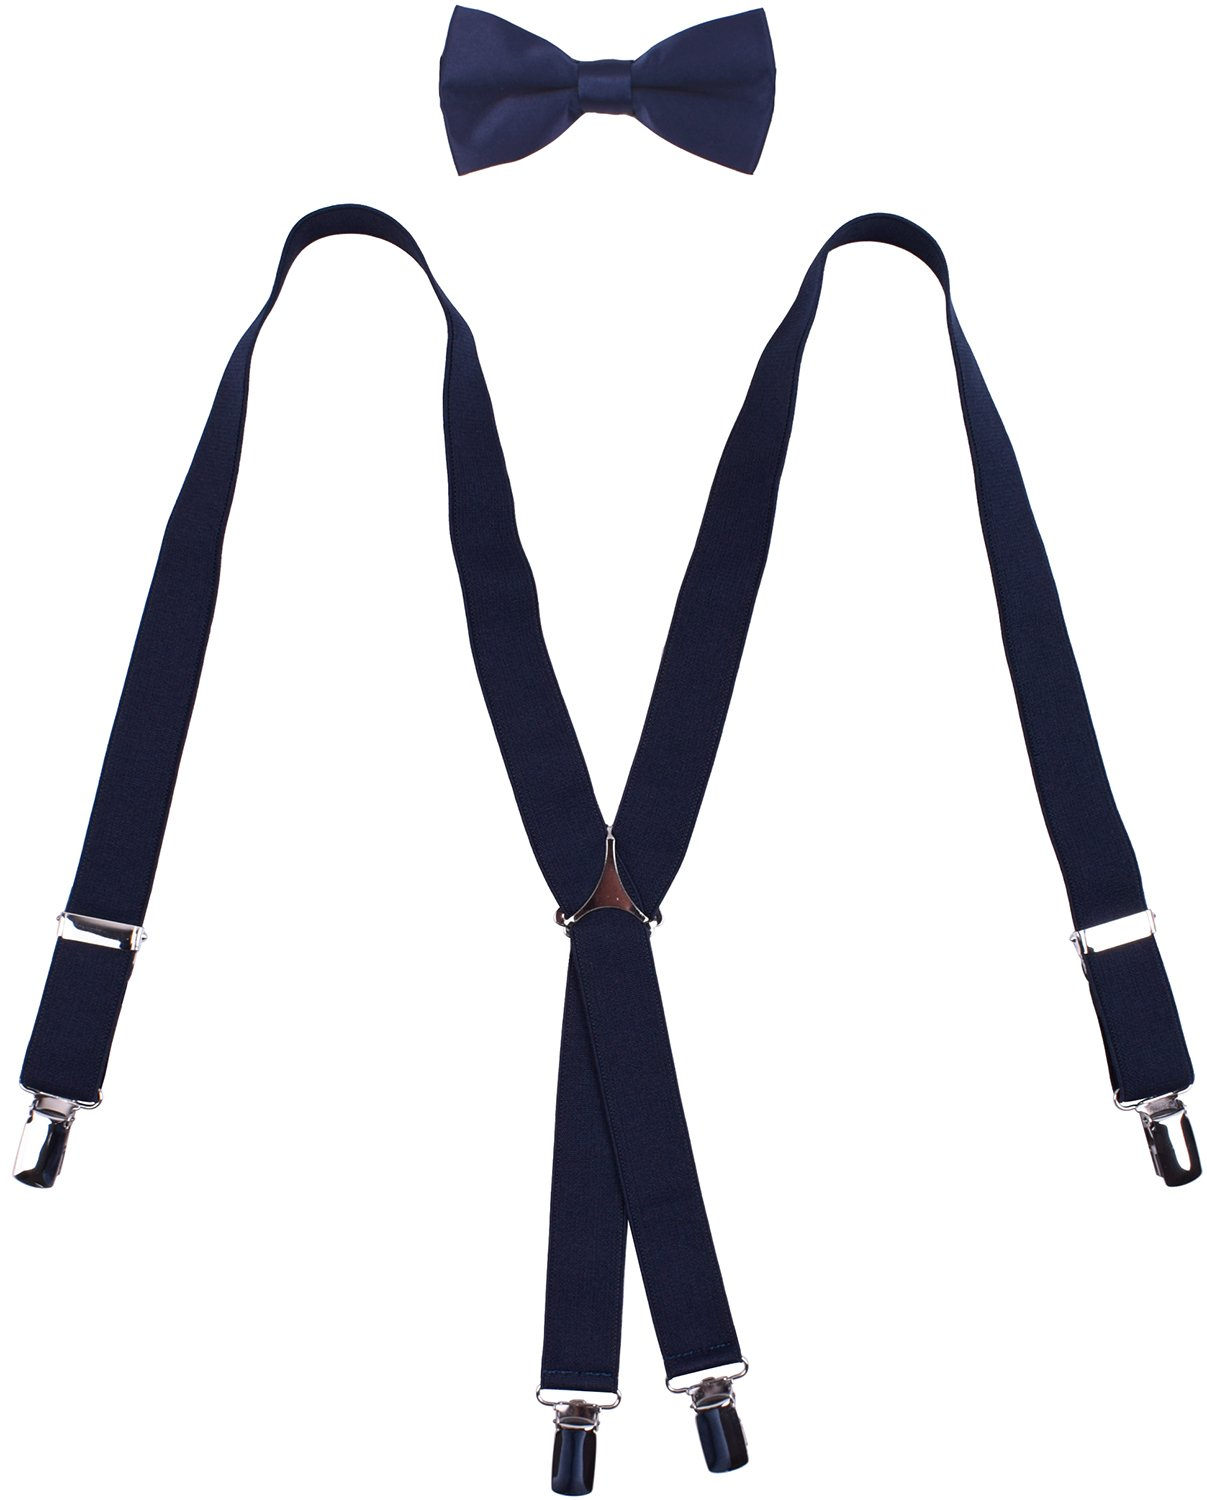 WDSKY Mens Bow Tie and Suspenders Set Classic X Back Navy Blue